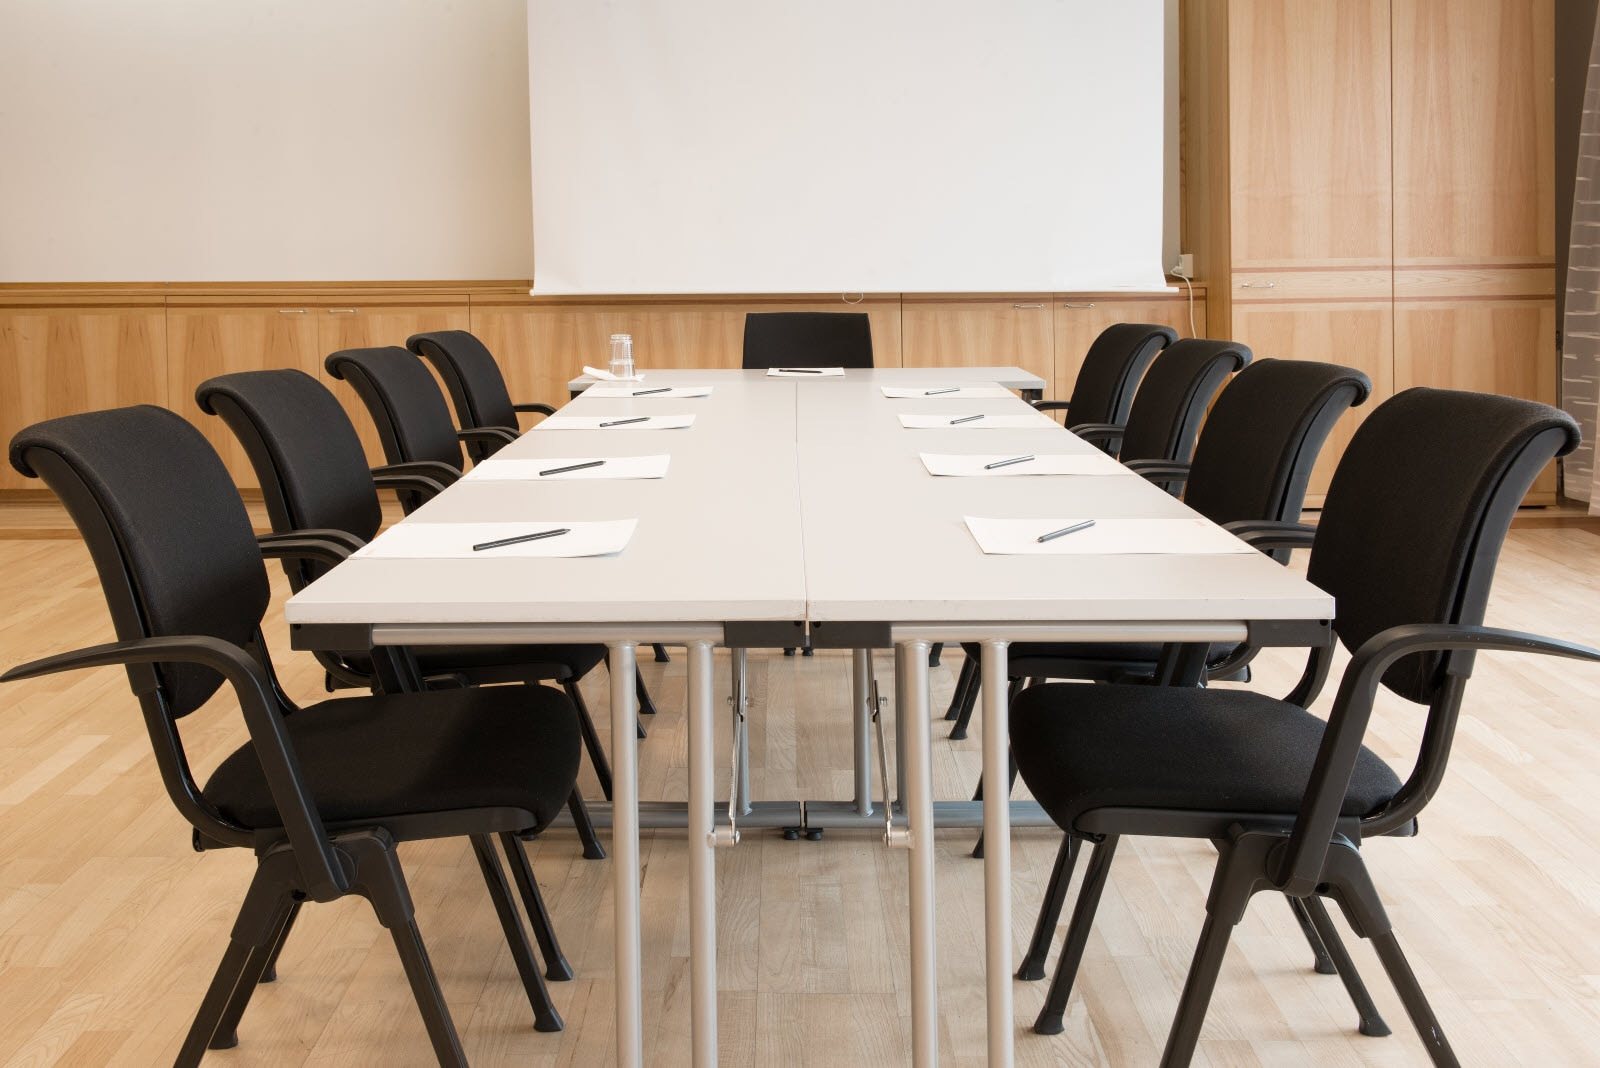 Scandic-Skogshojd-Conference-Room-Asko.jpg